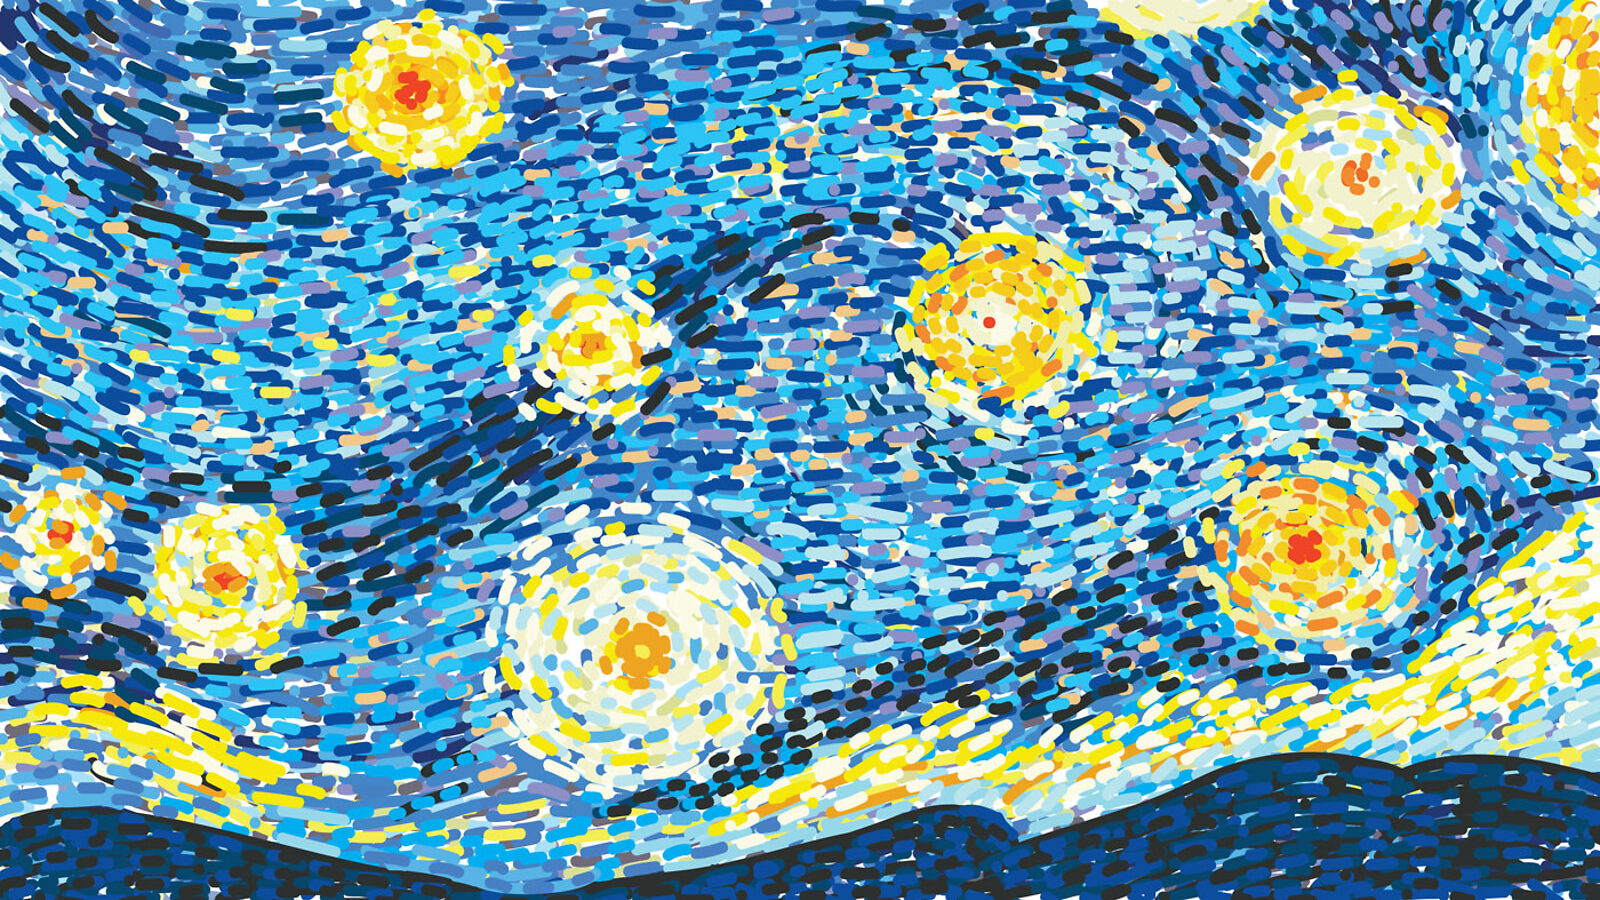 Image: HeavenlyNeutrinos_Starry Night